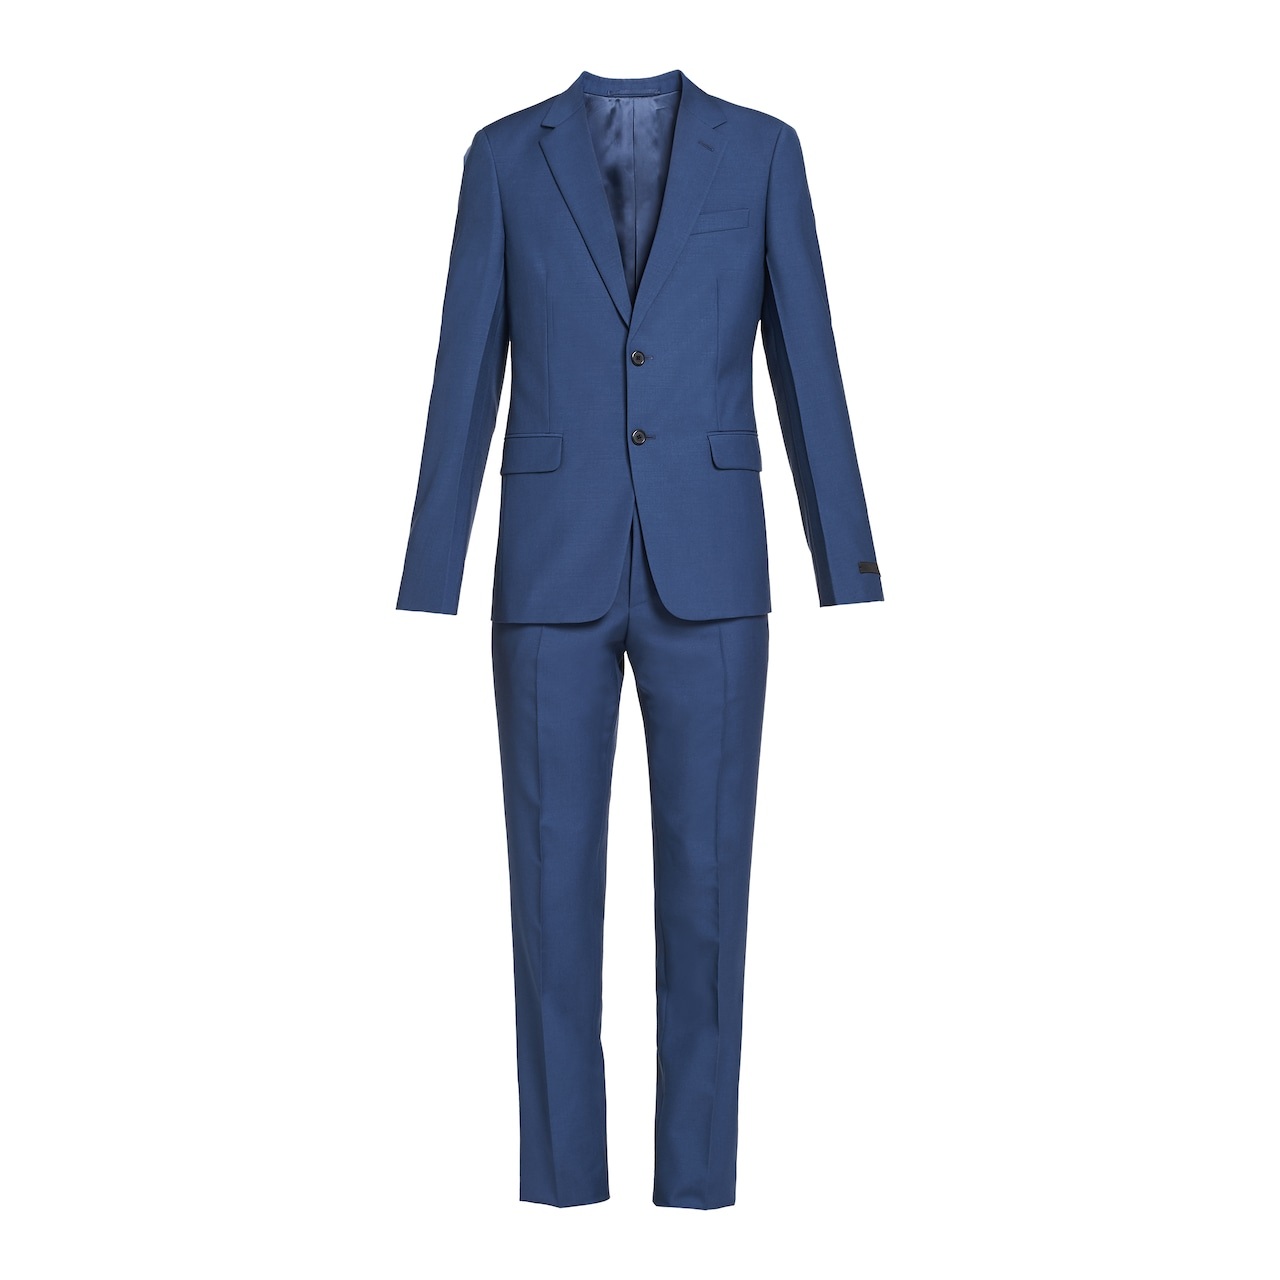 Prada Wool and mohair single-breasted suit 1